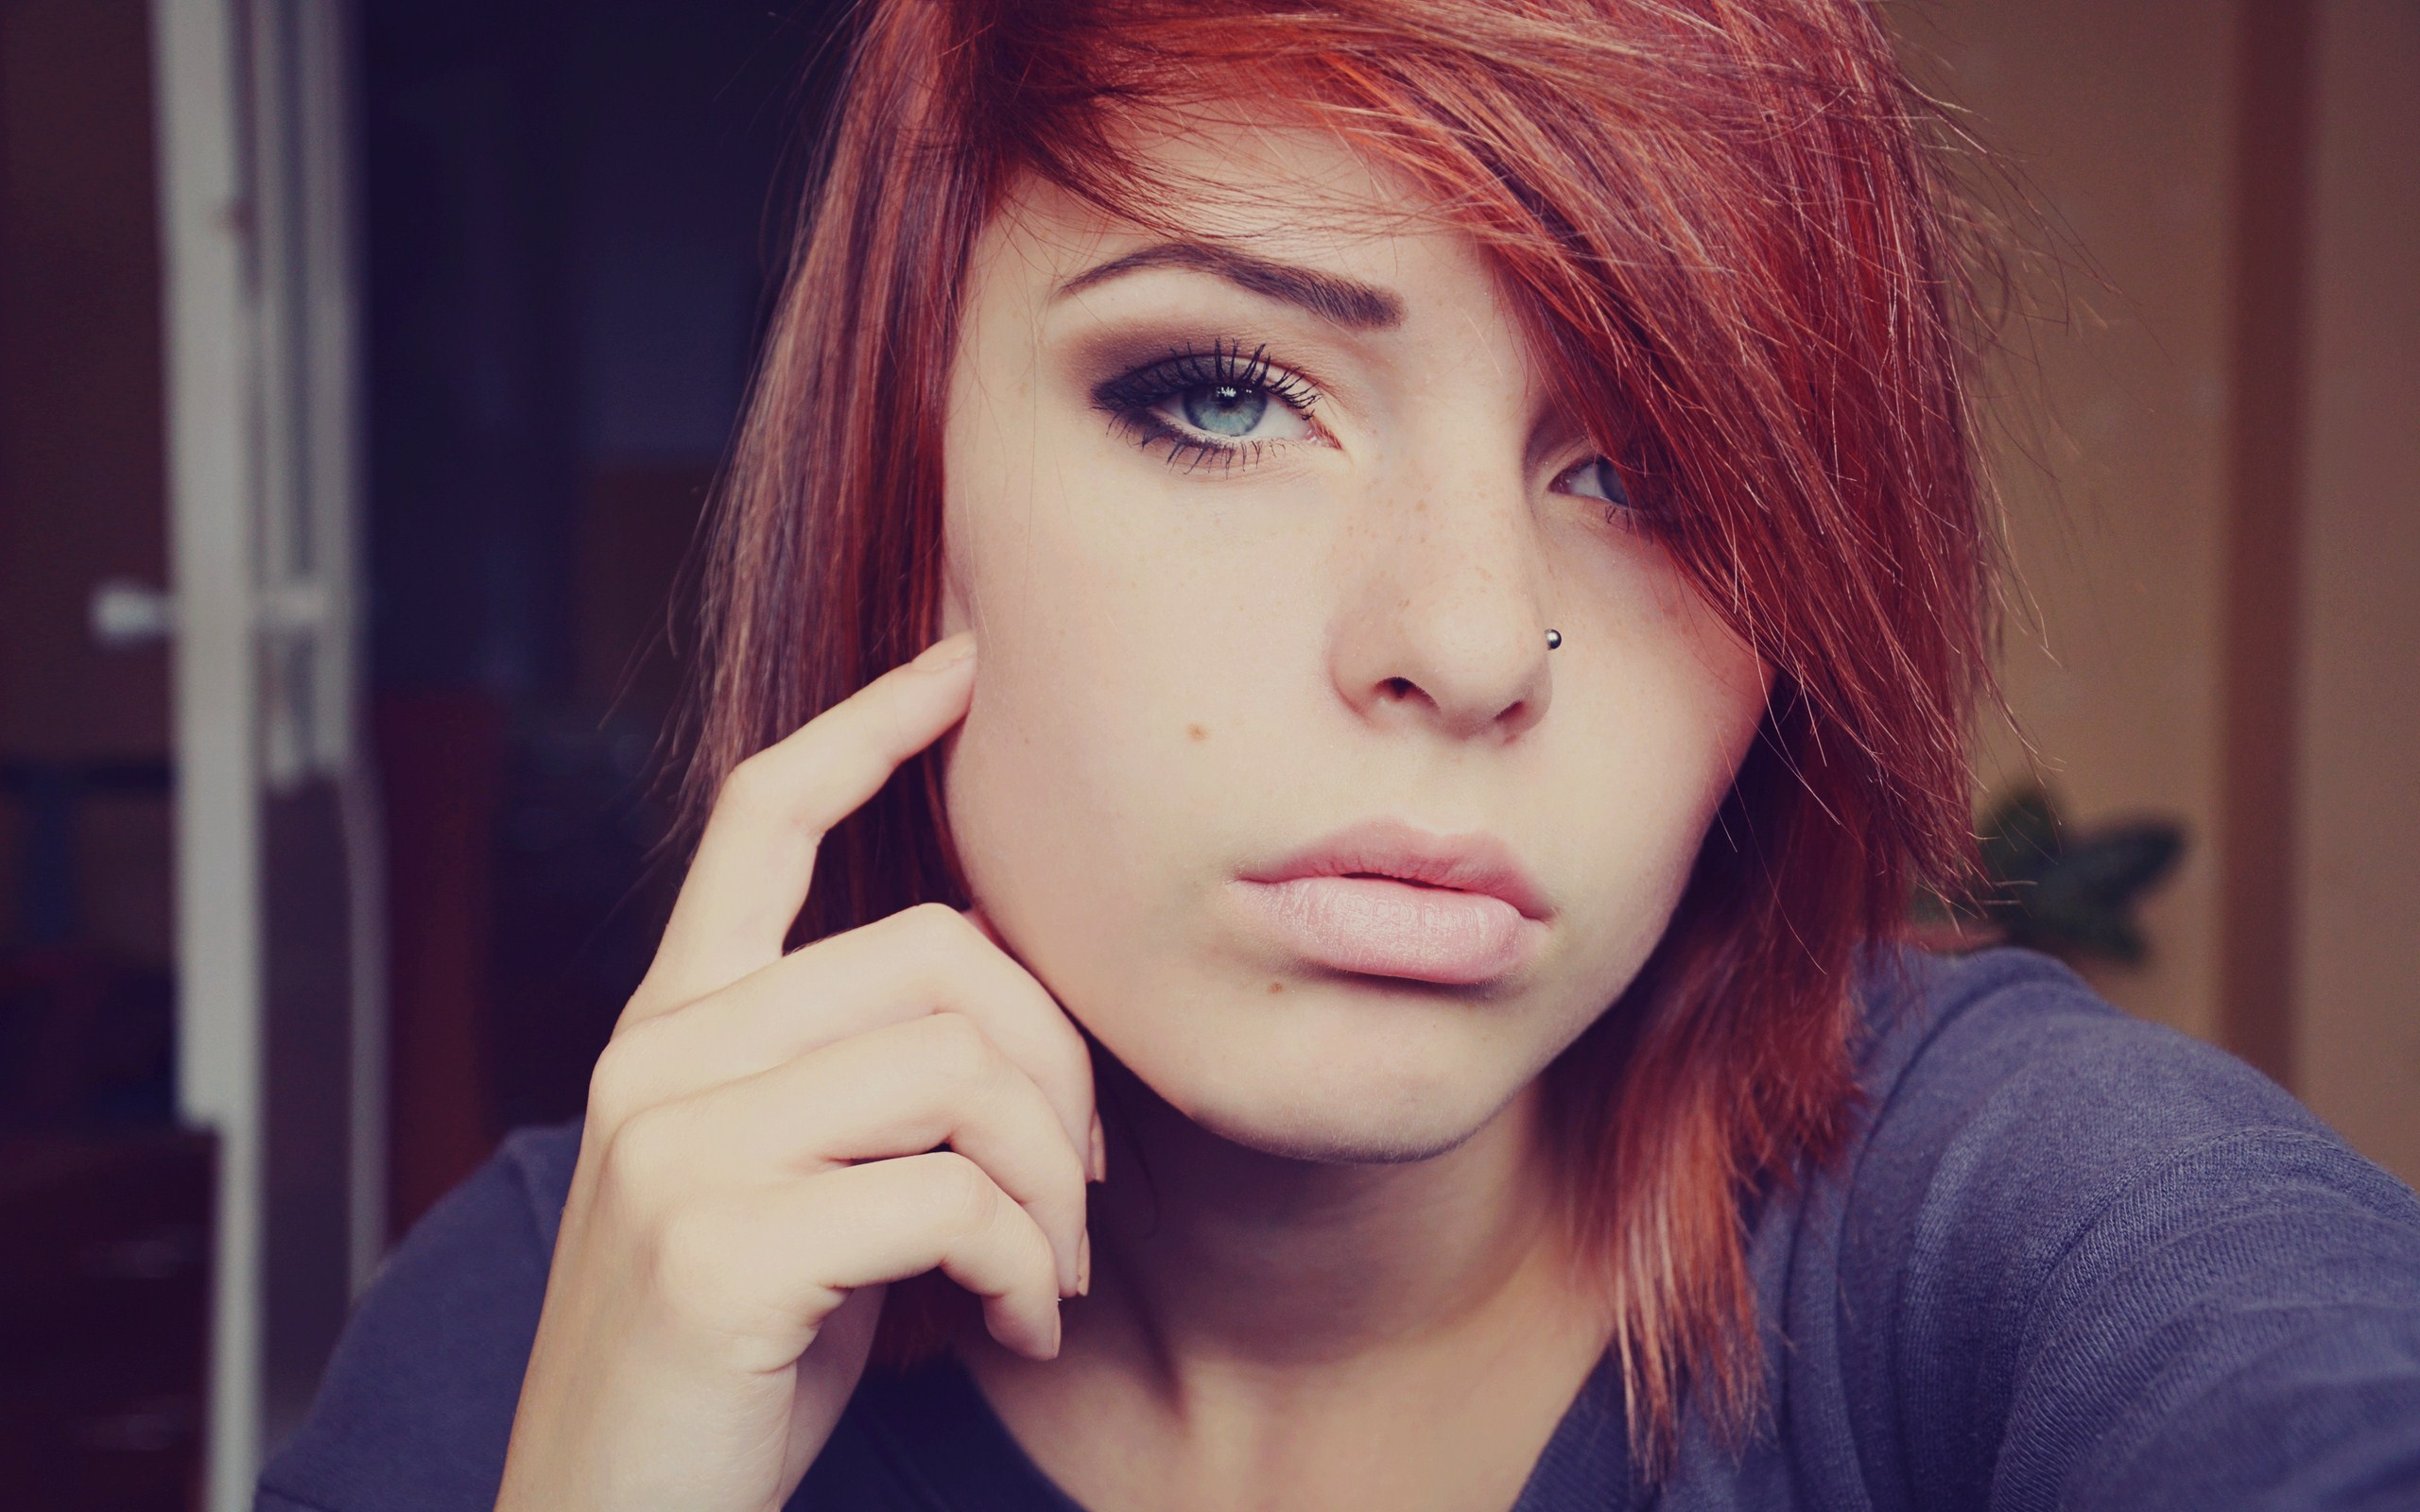 Great Redhead Girl Wallpaper  Full Hd Pictures-5063